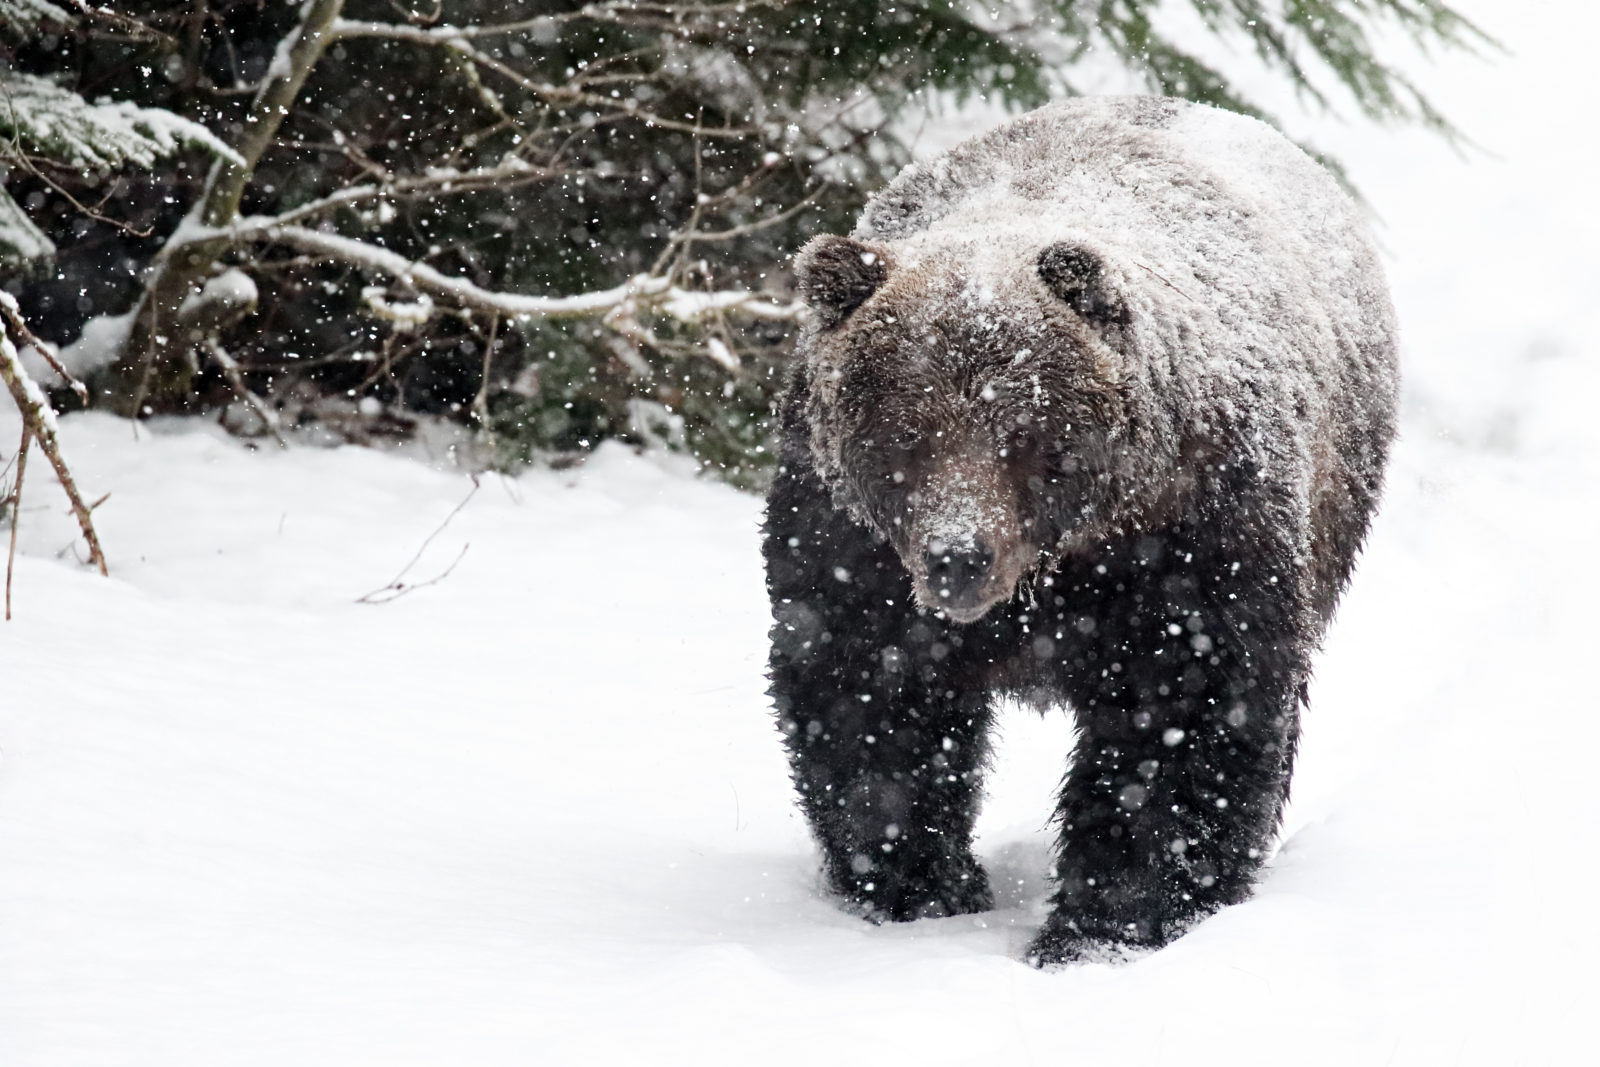 Brown bear in a blizzard